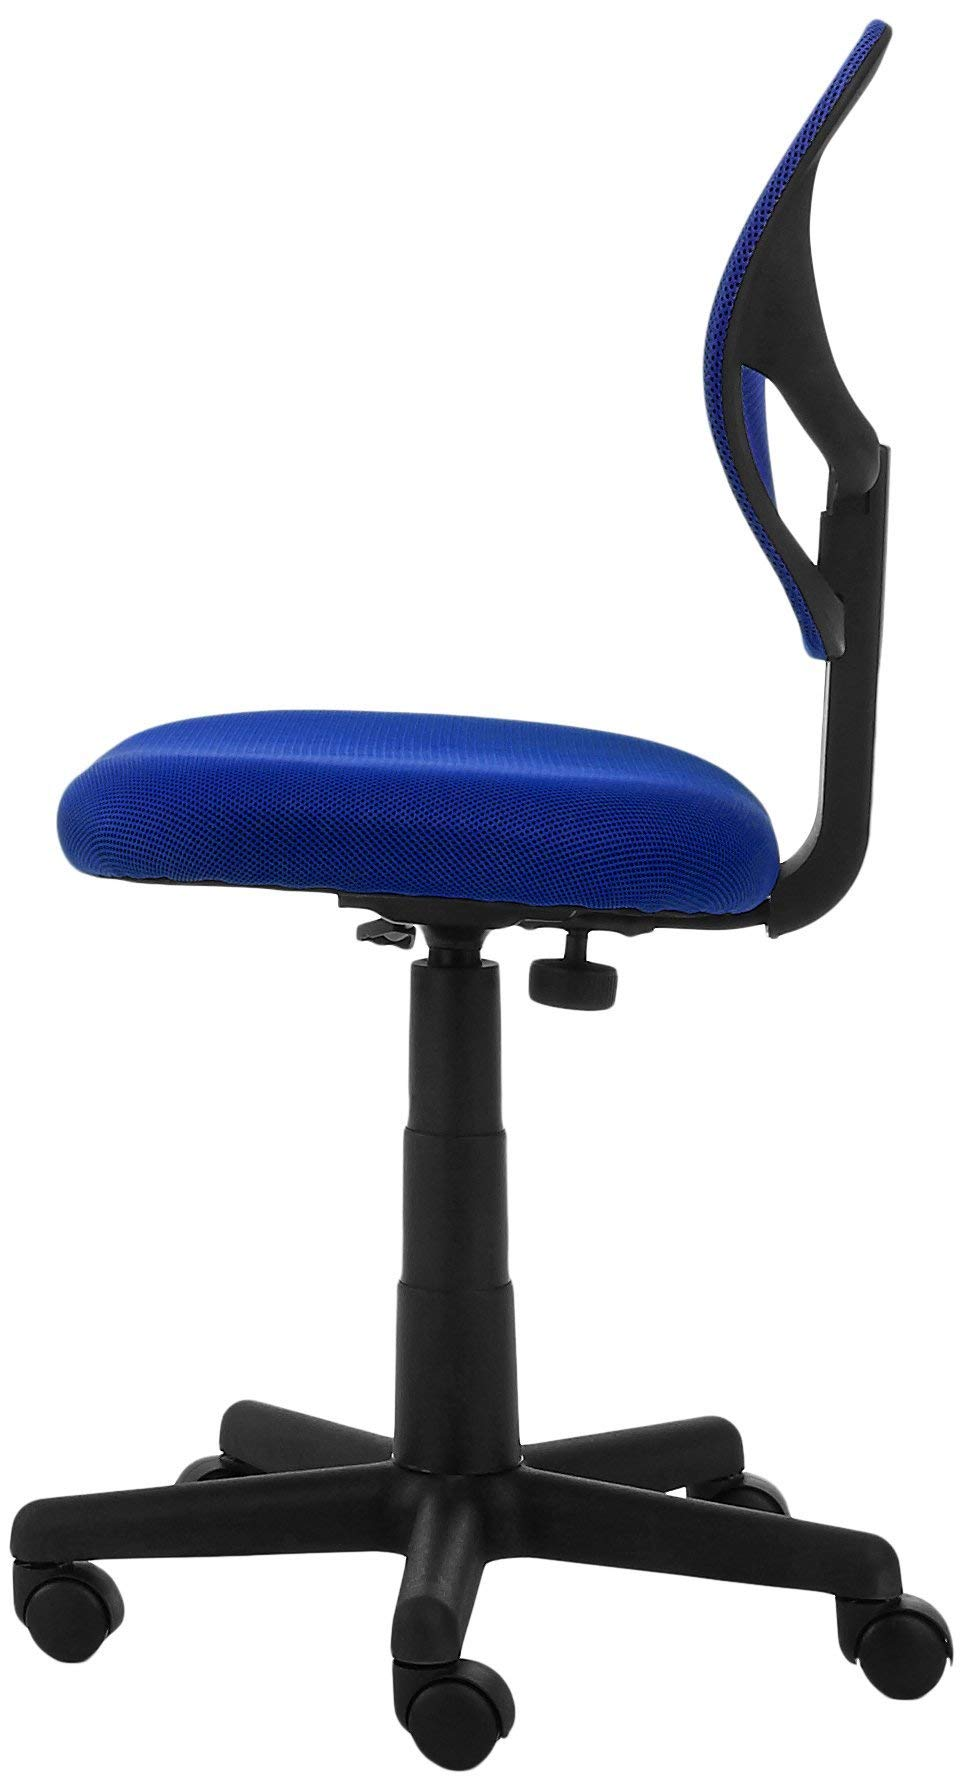 AmazonBasics Low-Back Computer Task Office Desk Chair with Swivel Casters - Blue by AmazonBasics (Image #6)